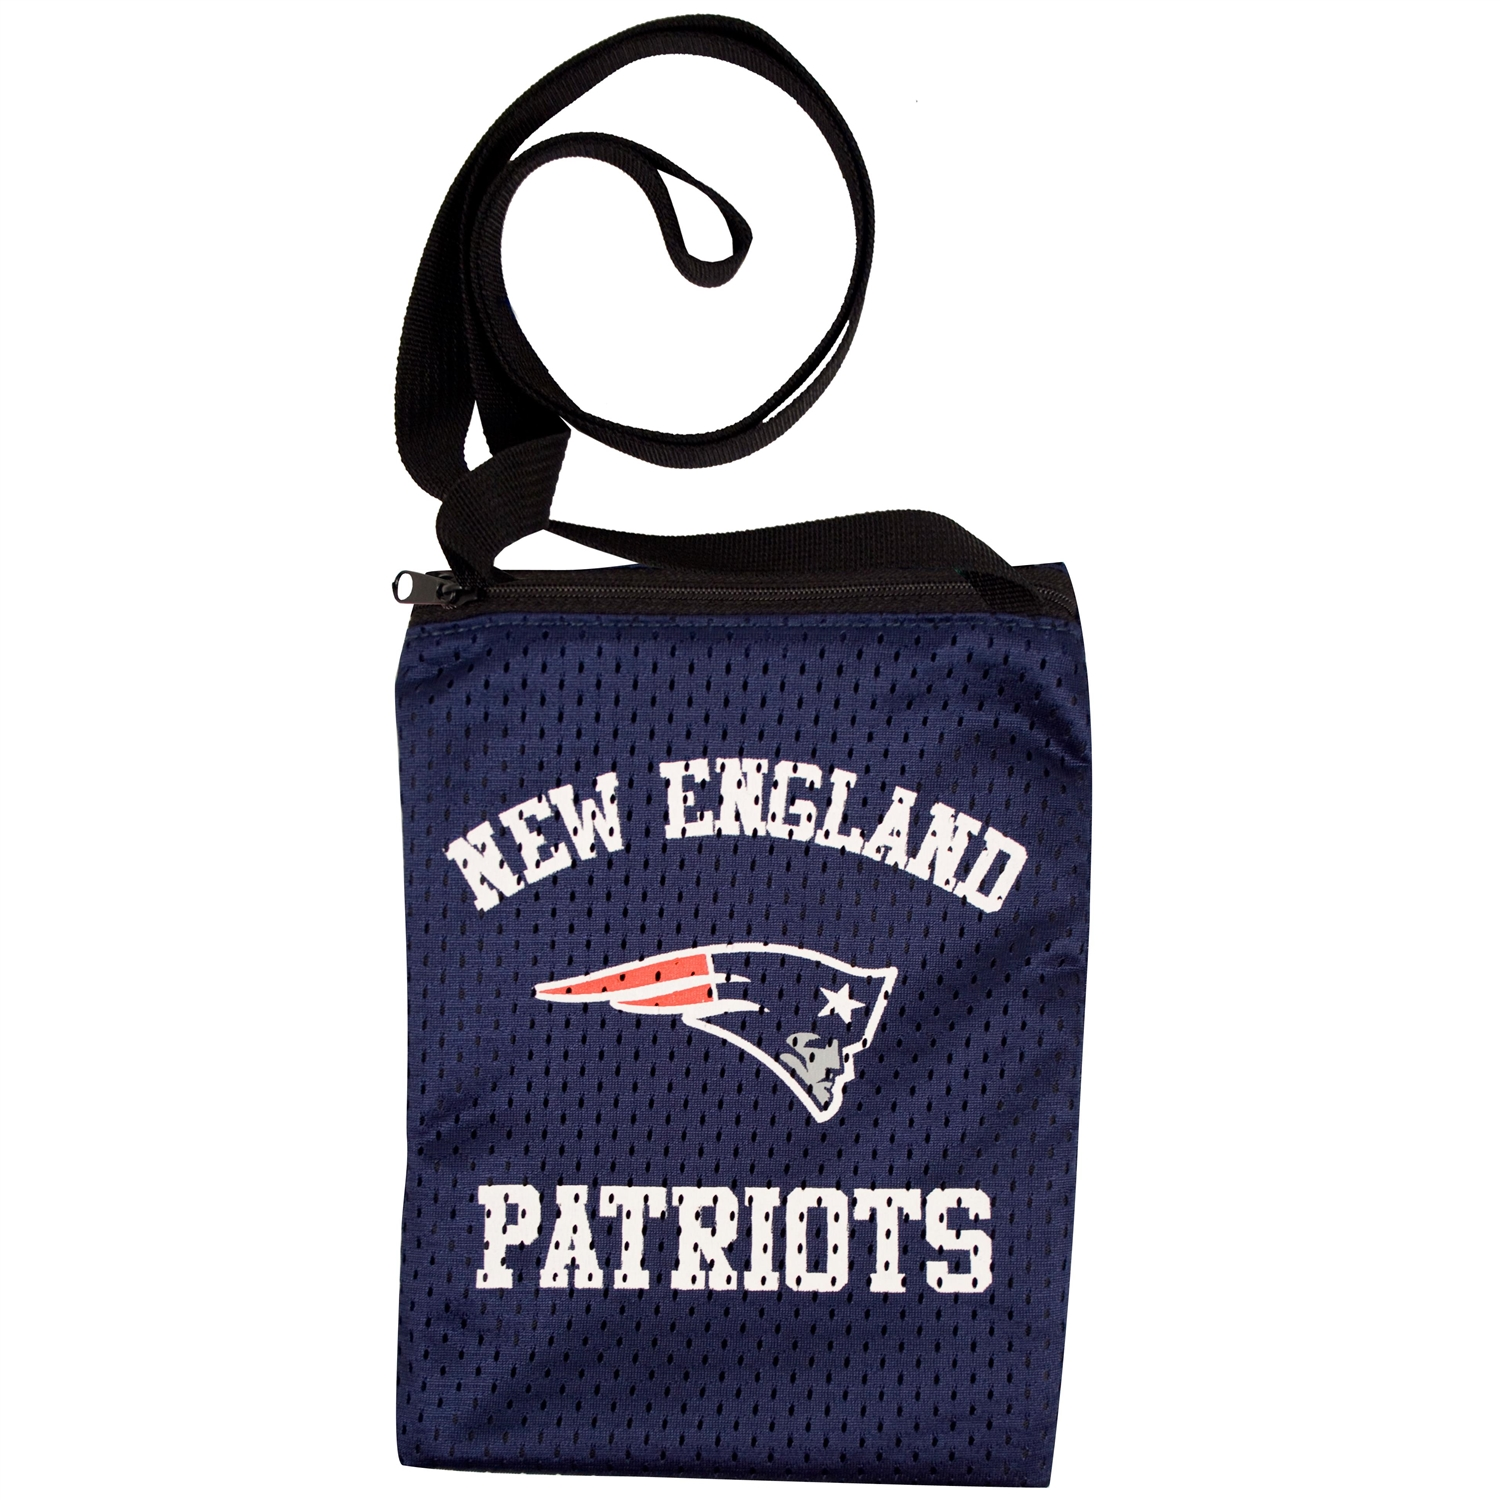 Nfl Football New England Patriots Toys Games Puzzles Games - 300103-pats-1 - New England Patriots Game Day Pouch 300103-PATS-1